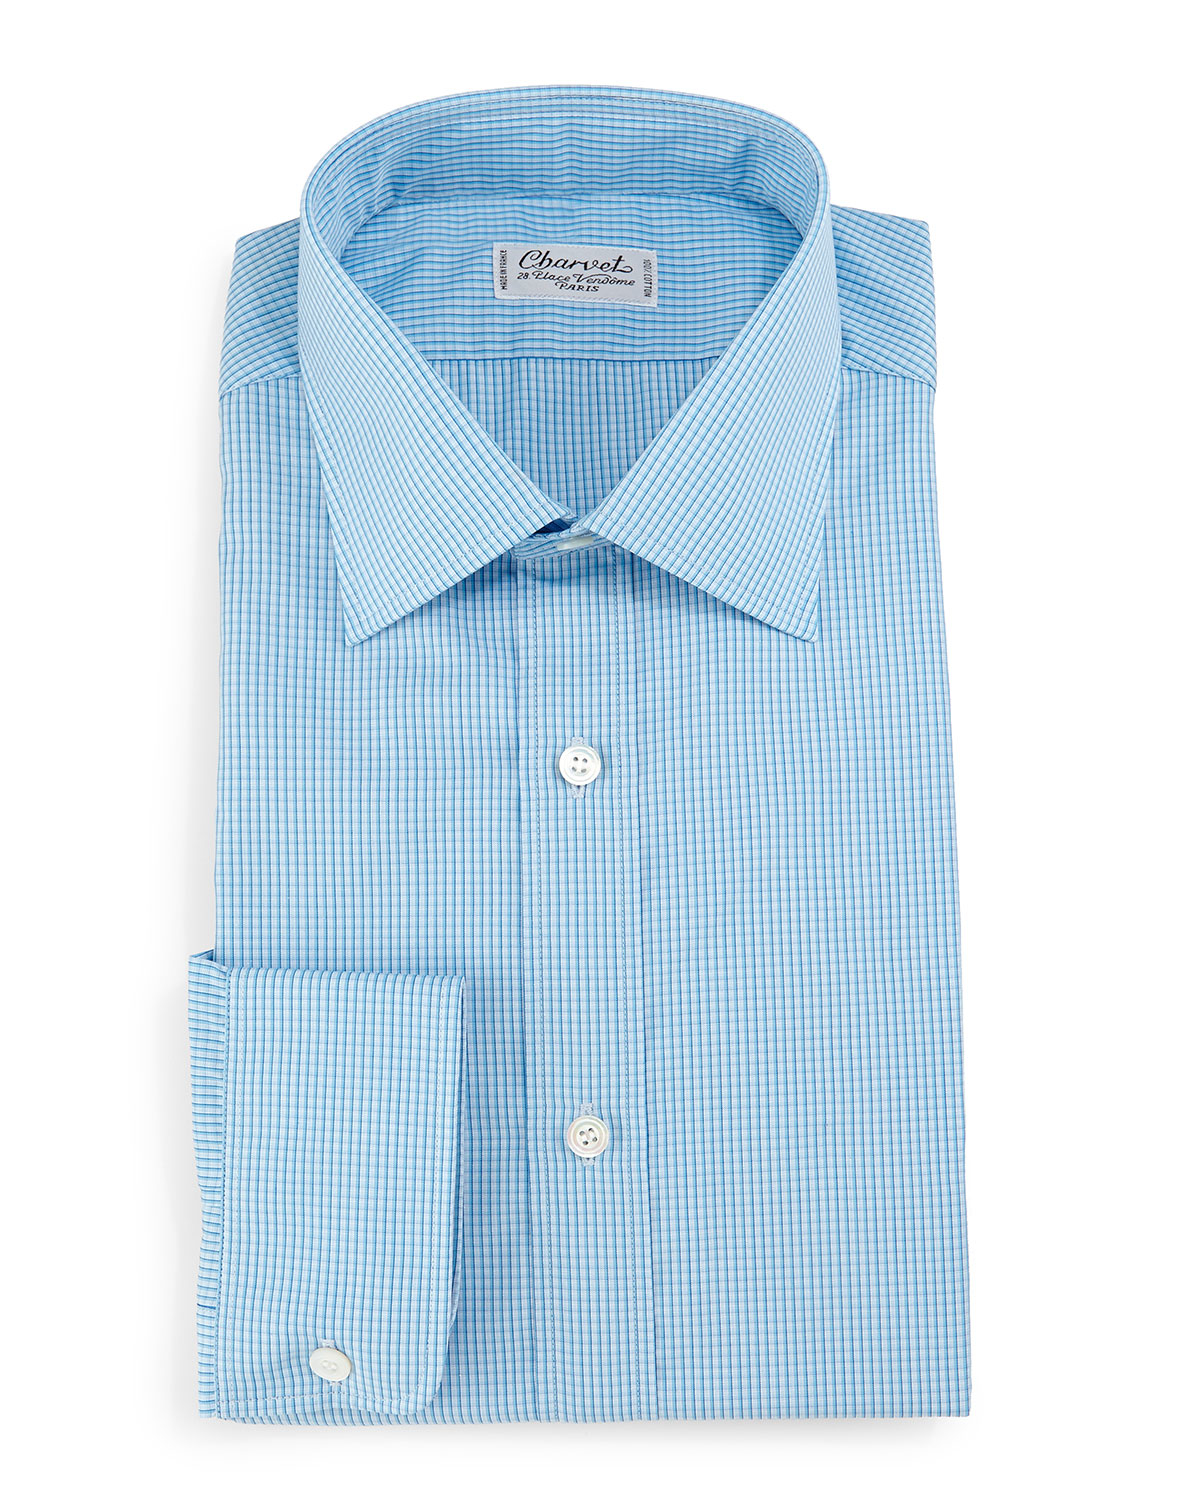 Charvet Check Barrel Cuff Dress Shirt In Blue For Men Lyst